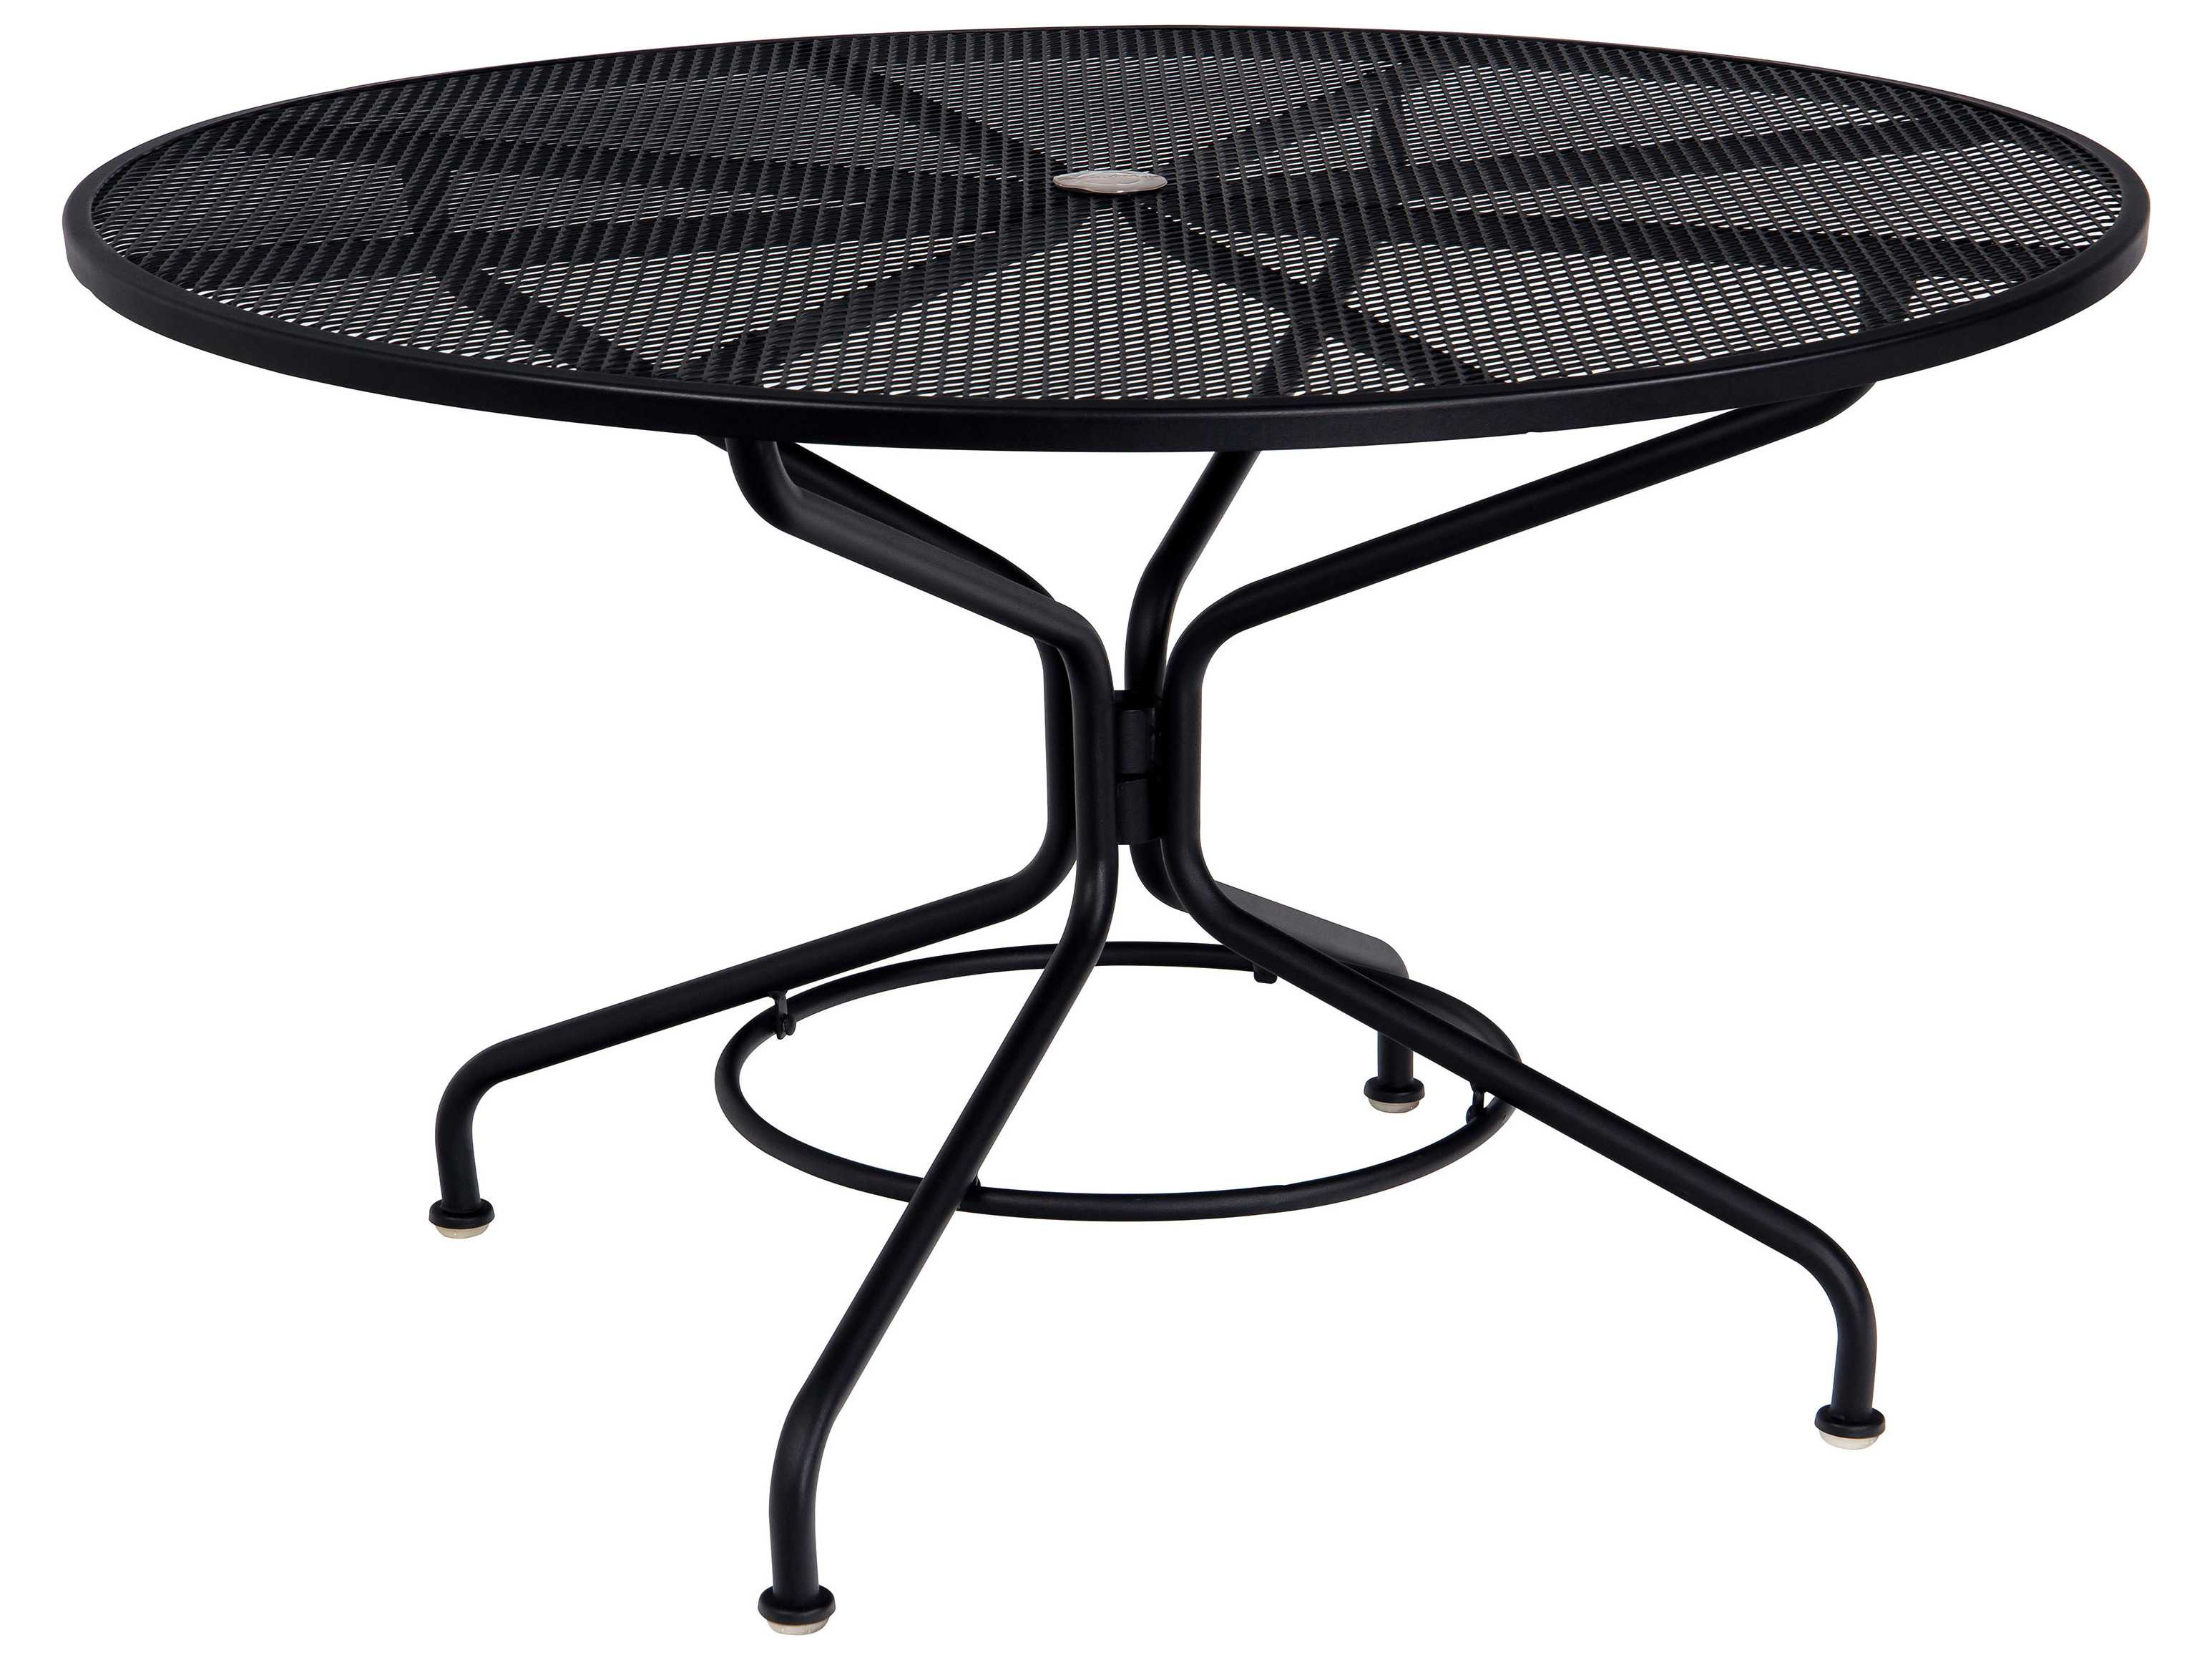 Patiofurniturebuy com woodard mesh wrought iron 48 round table with